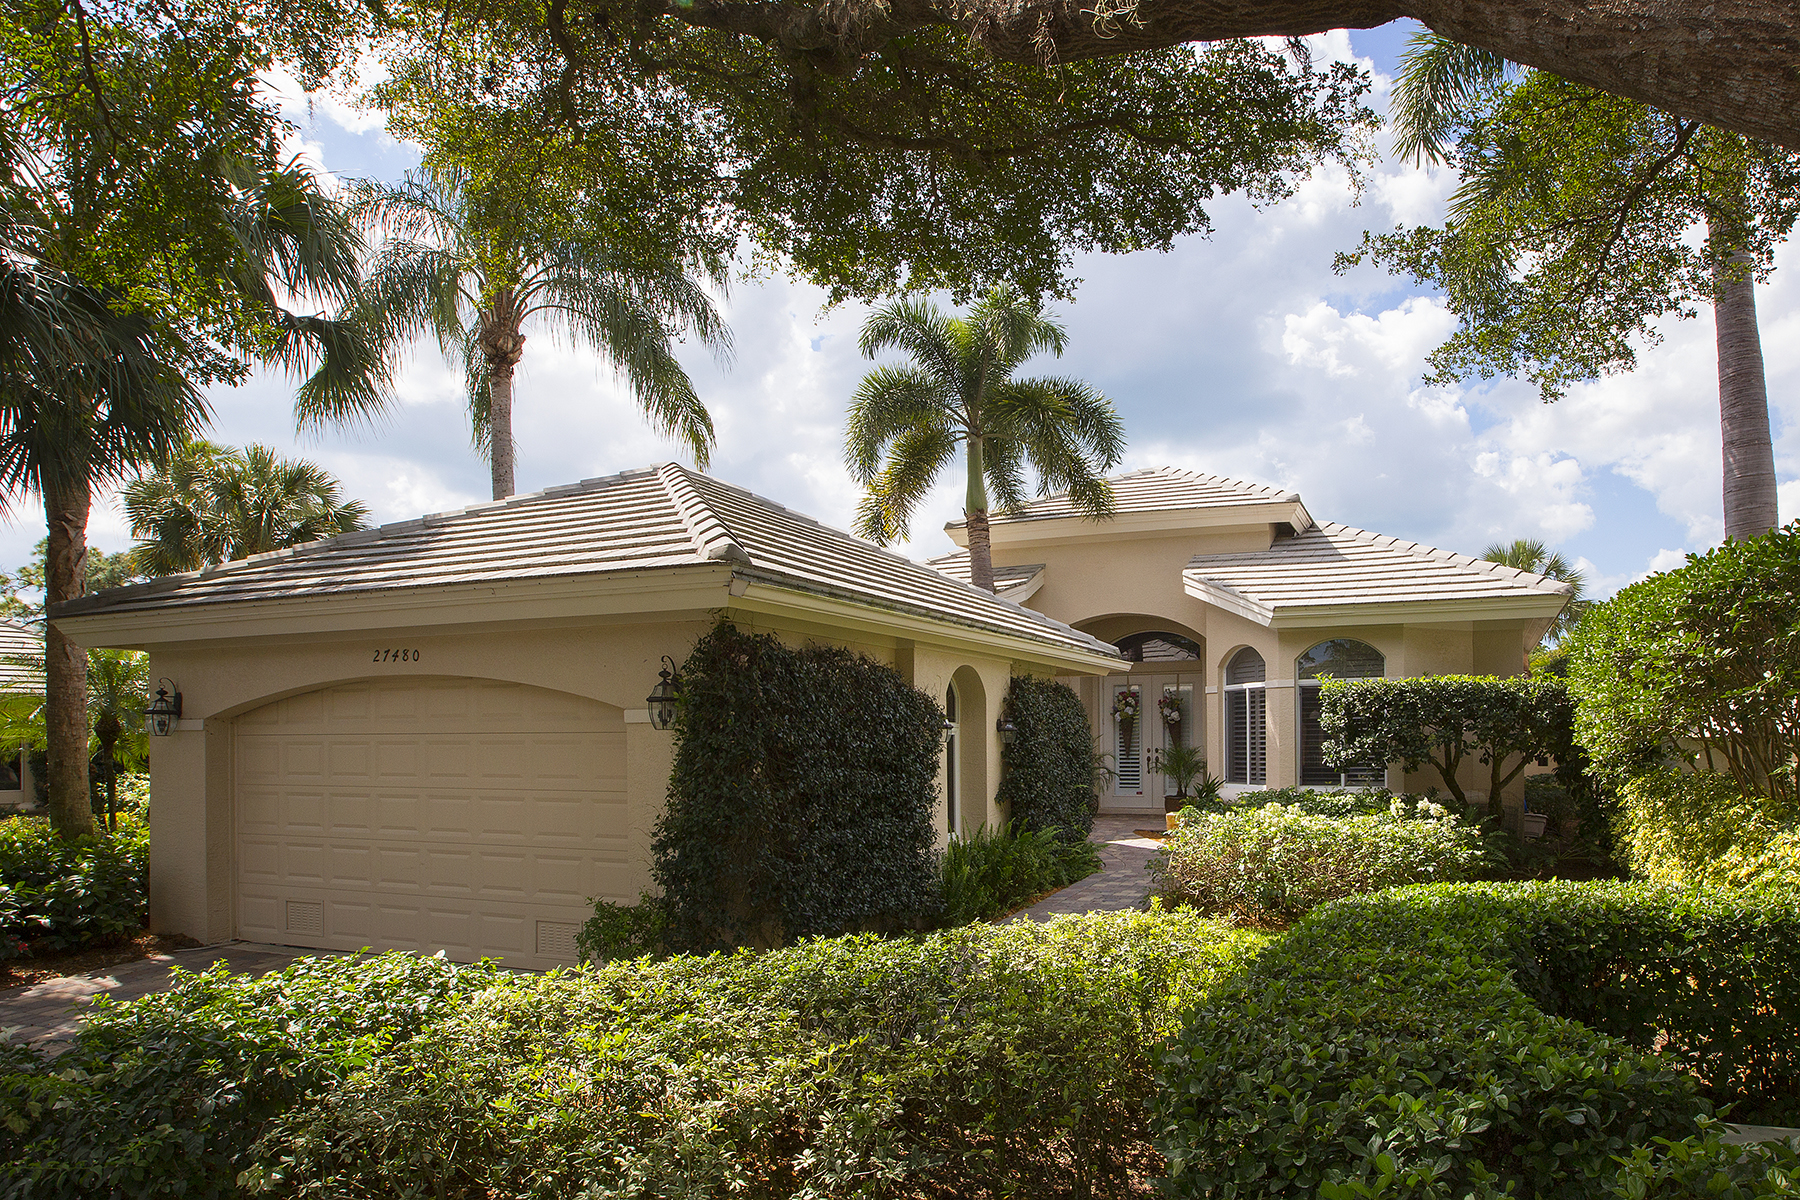 Single Family Home for Sale at BONITA BAY - ARBOR STRAND 27480 Arbor Strand Dr, Bonita Springs, Florida 34134 United States